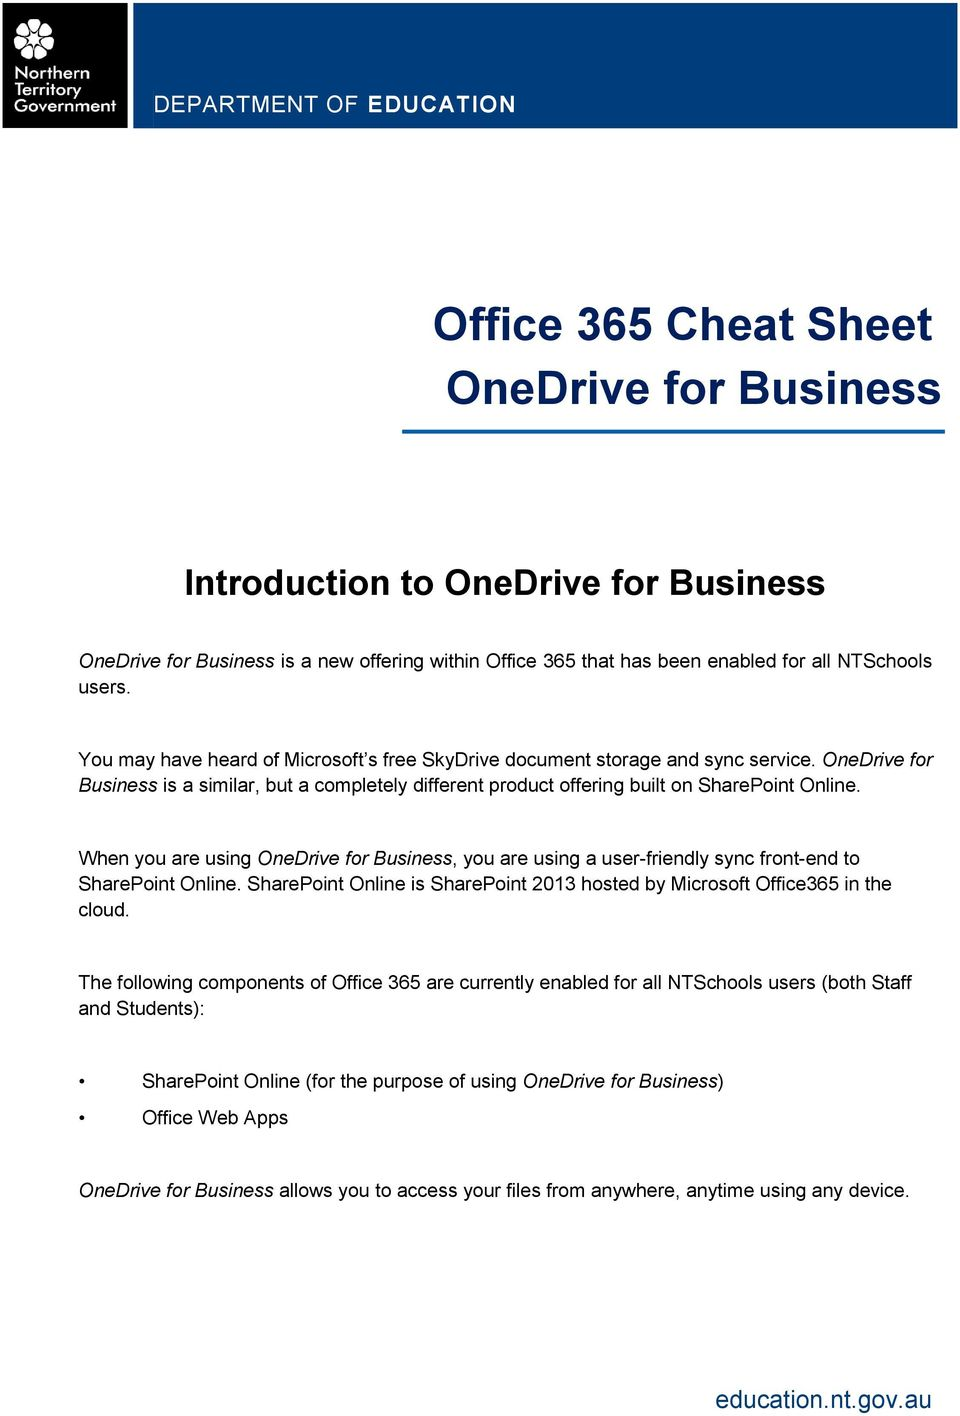 OneDrive for Business is a similar, but a completely different product offering built on SharePoint Online.